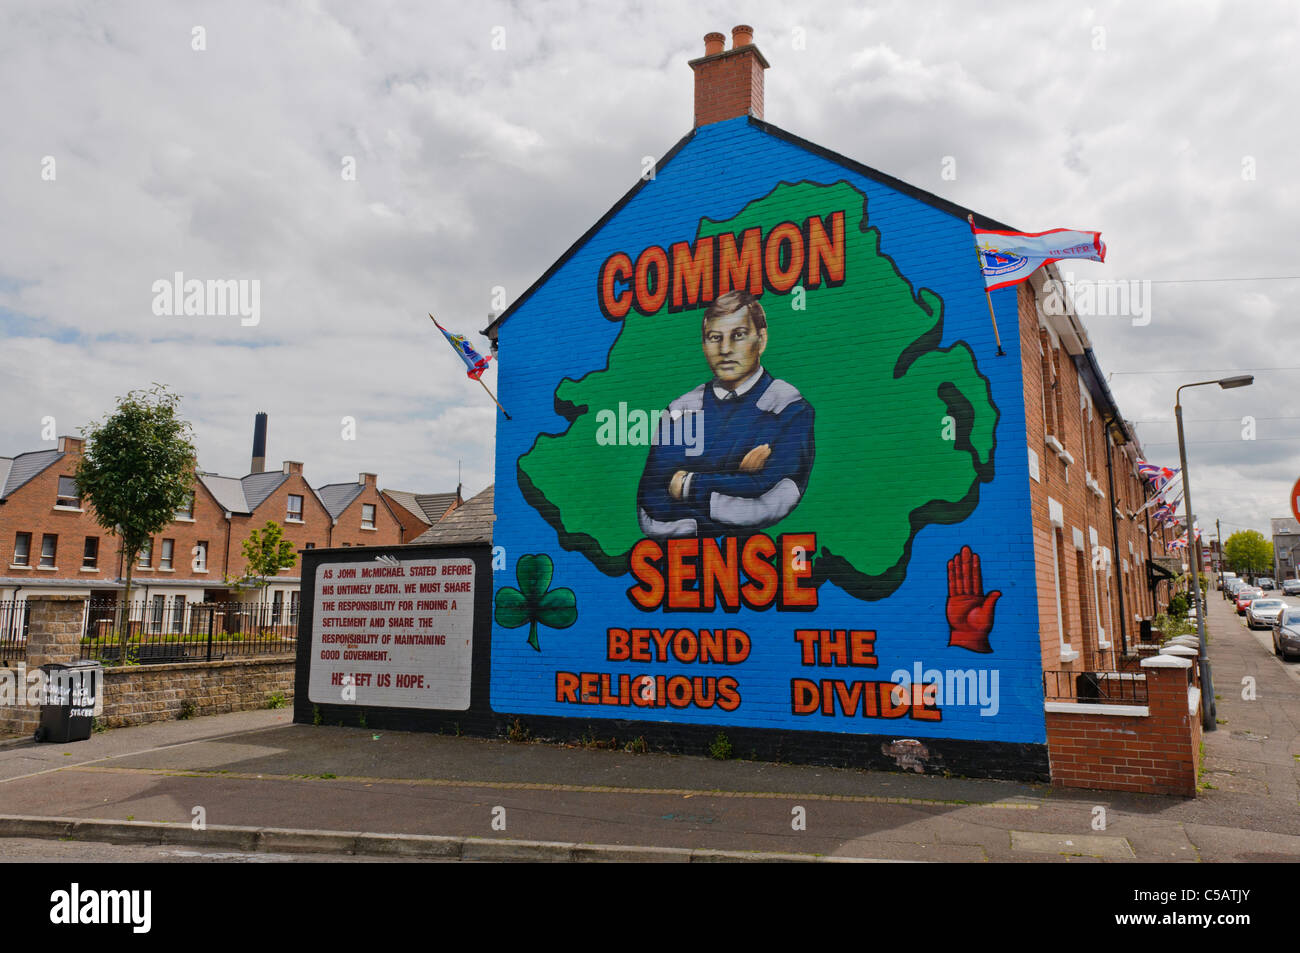 Mural in belfast common sense beyond the religious for Mural belfast